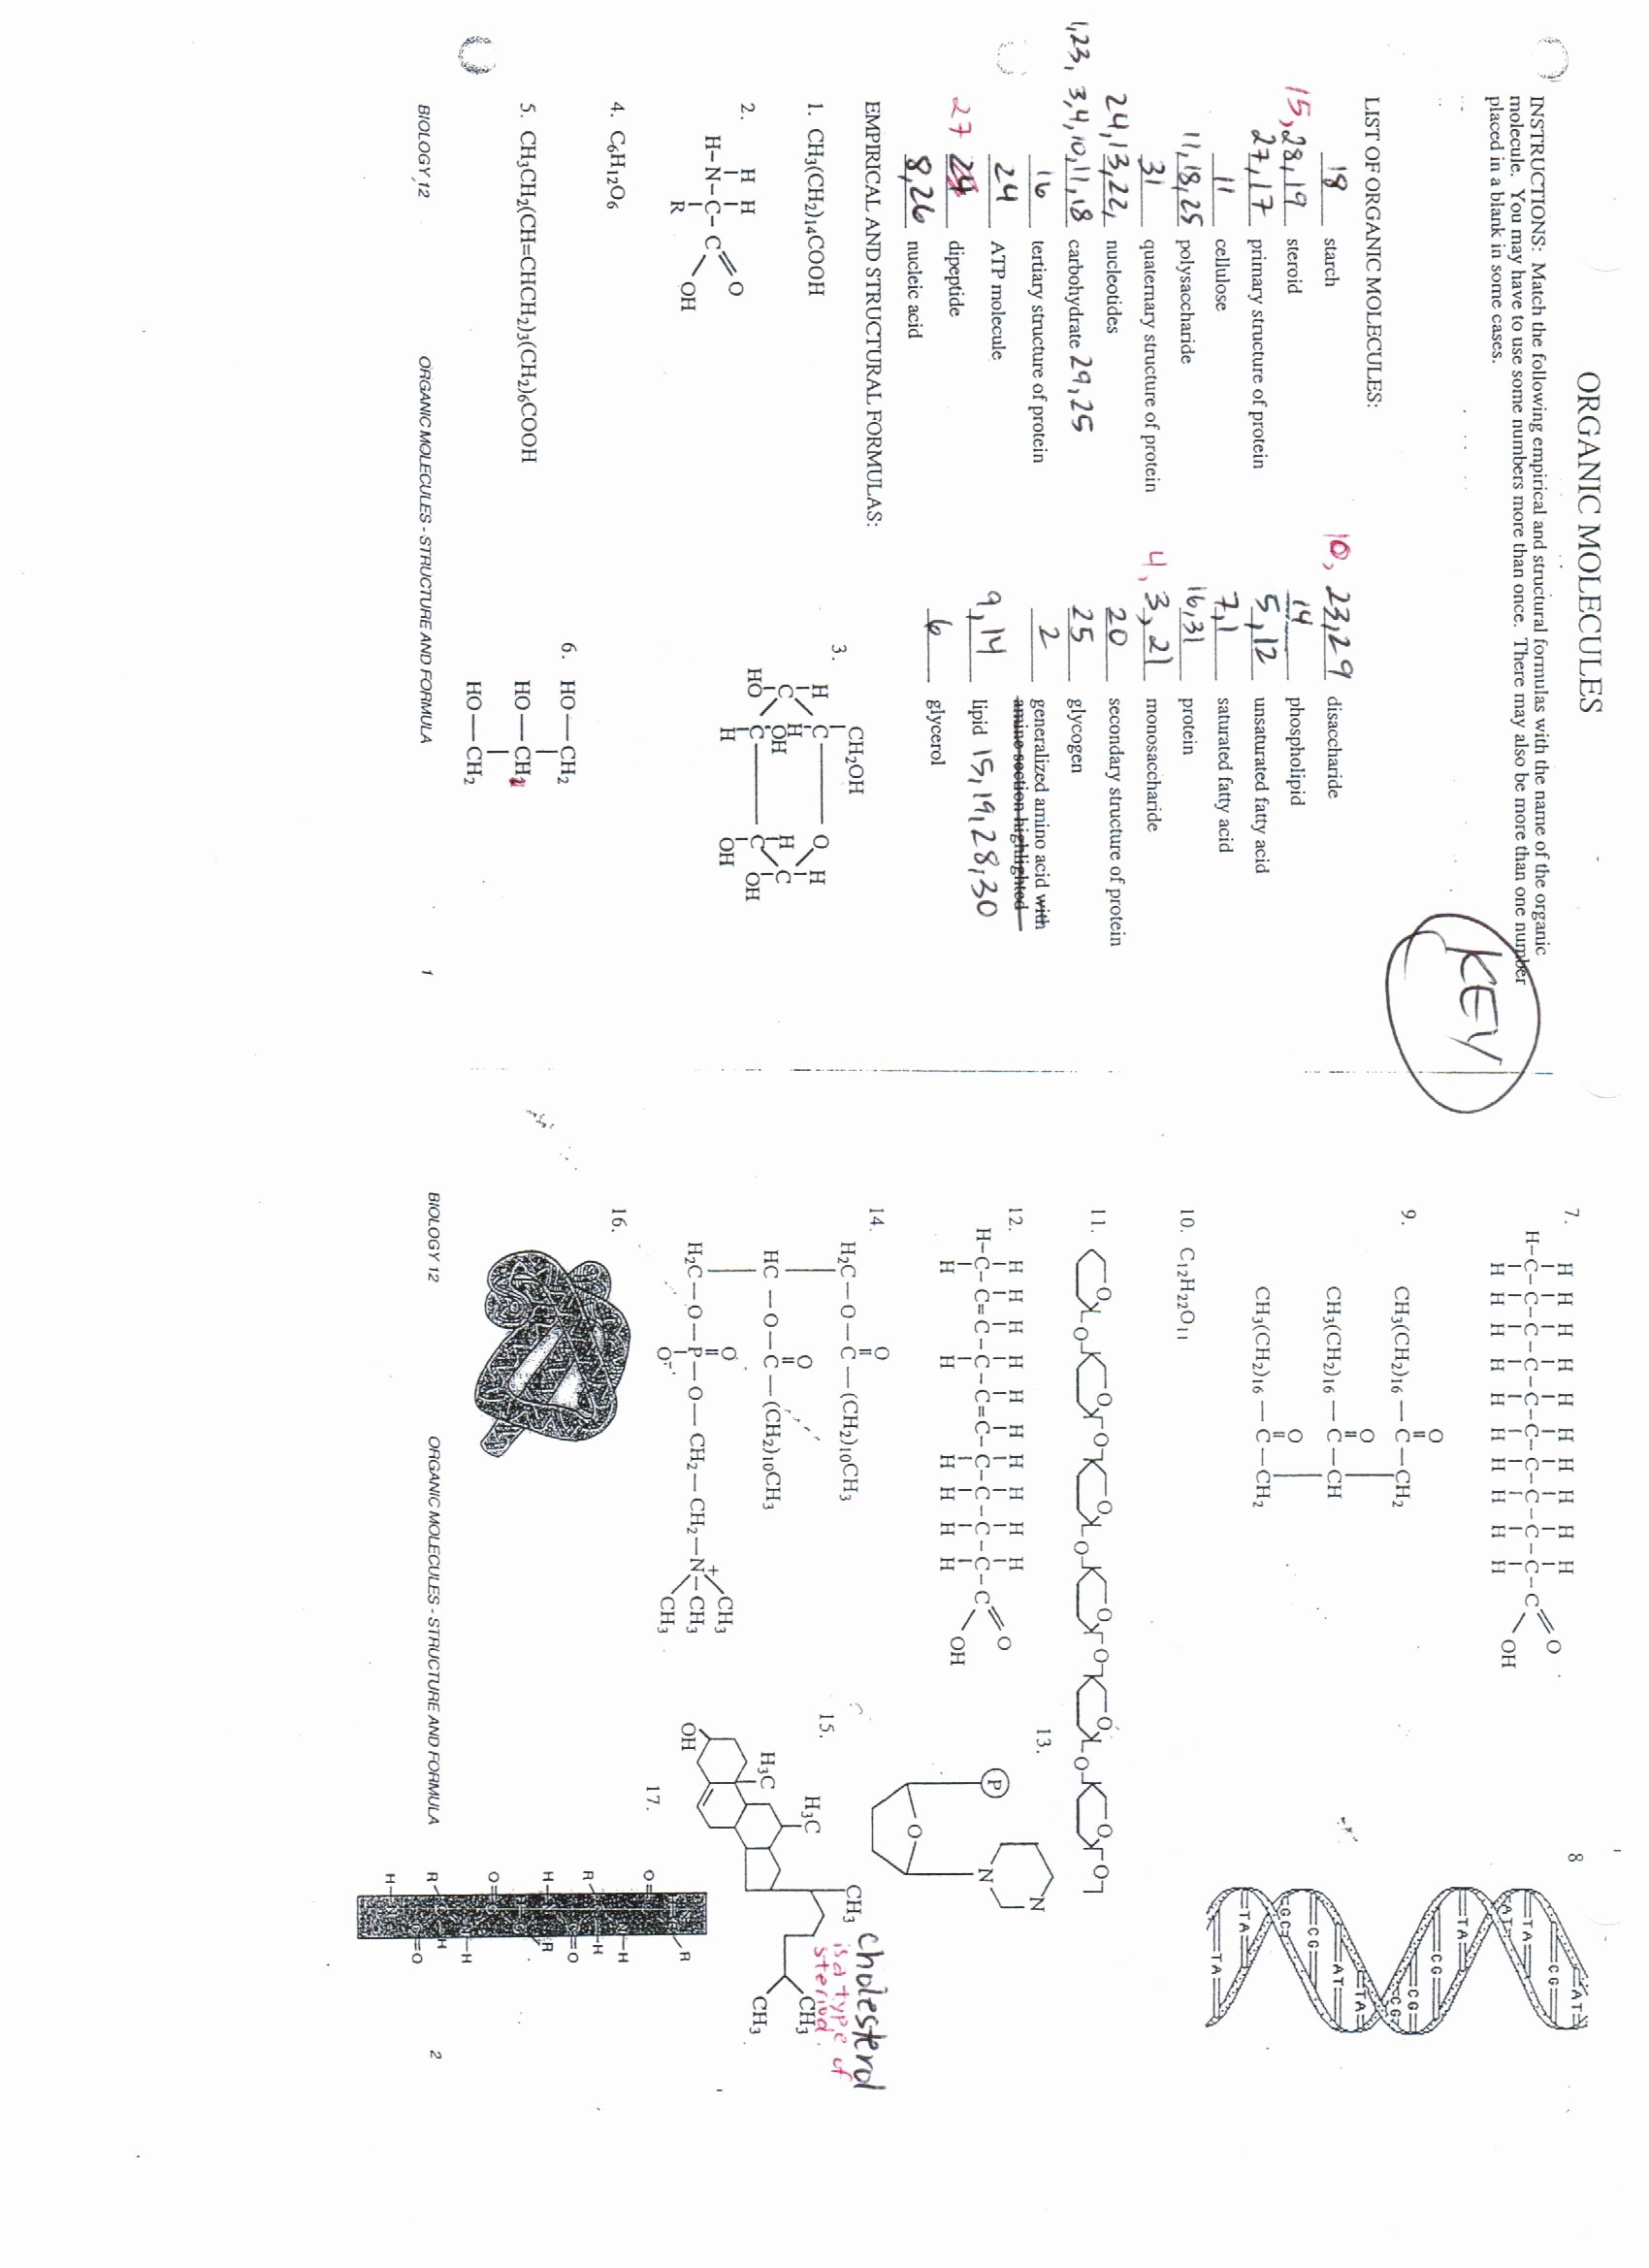 Organic Molecules Worksheet Answer Key Lovely Answers Lipids Nucleic Acids and organic Molecules